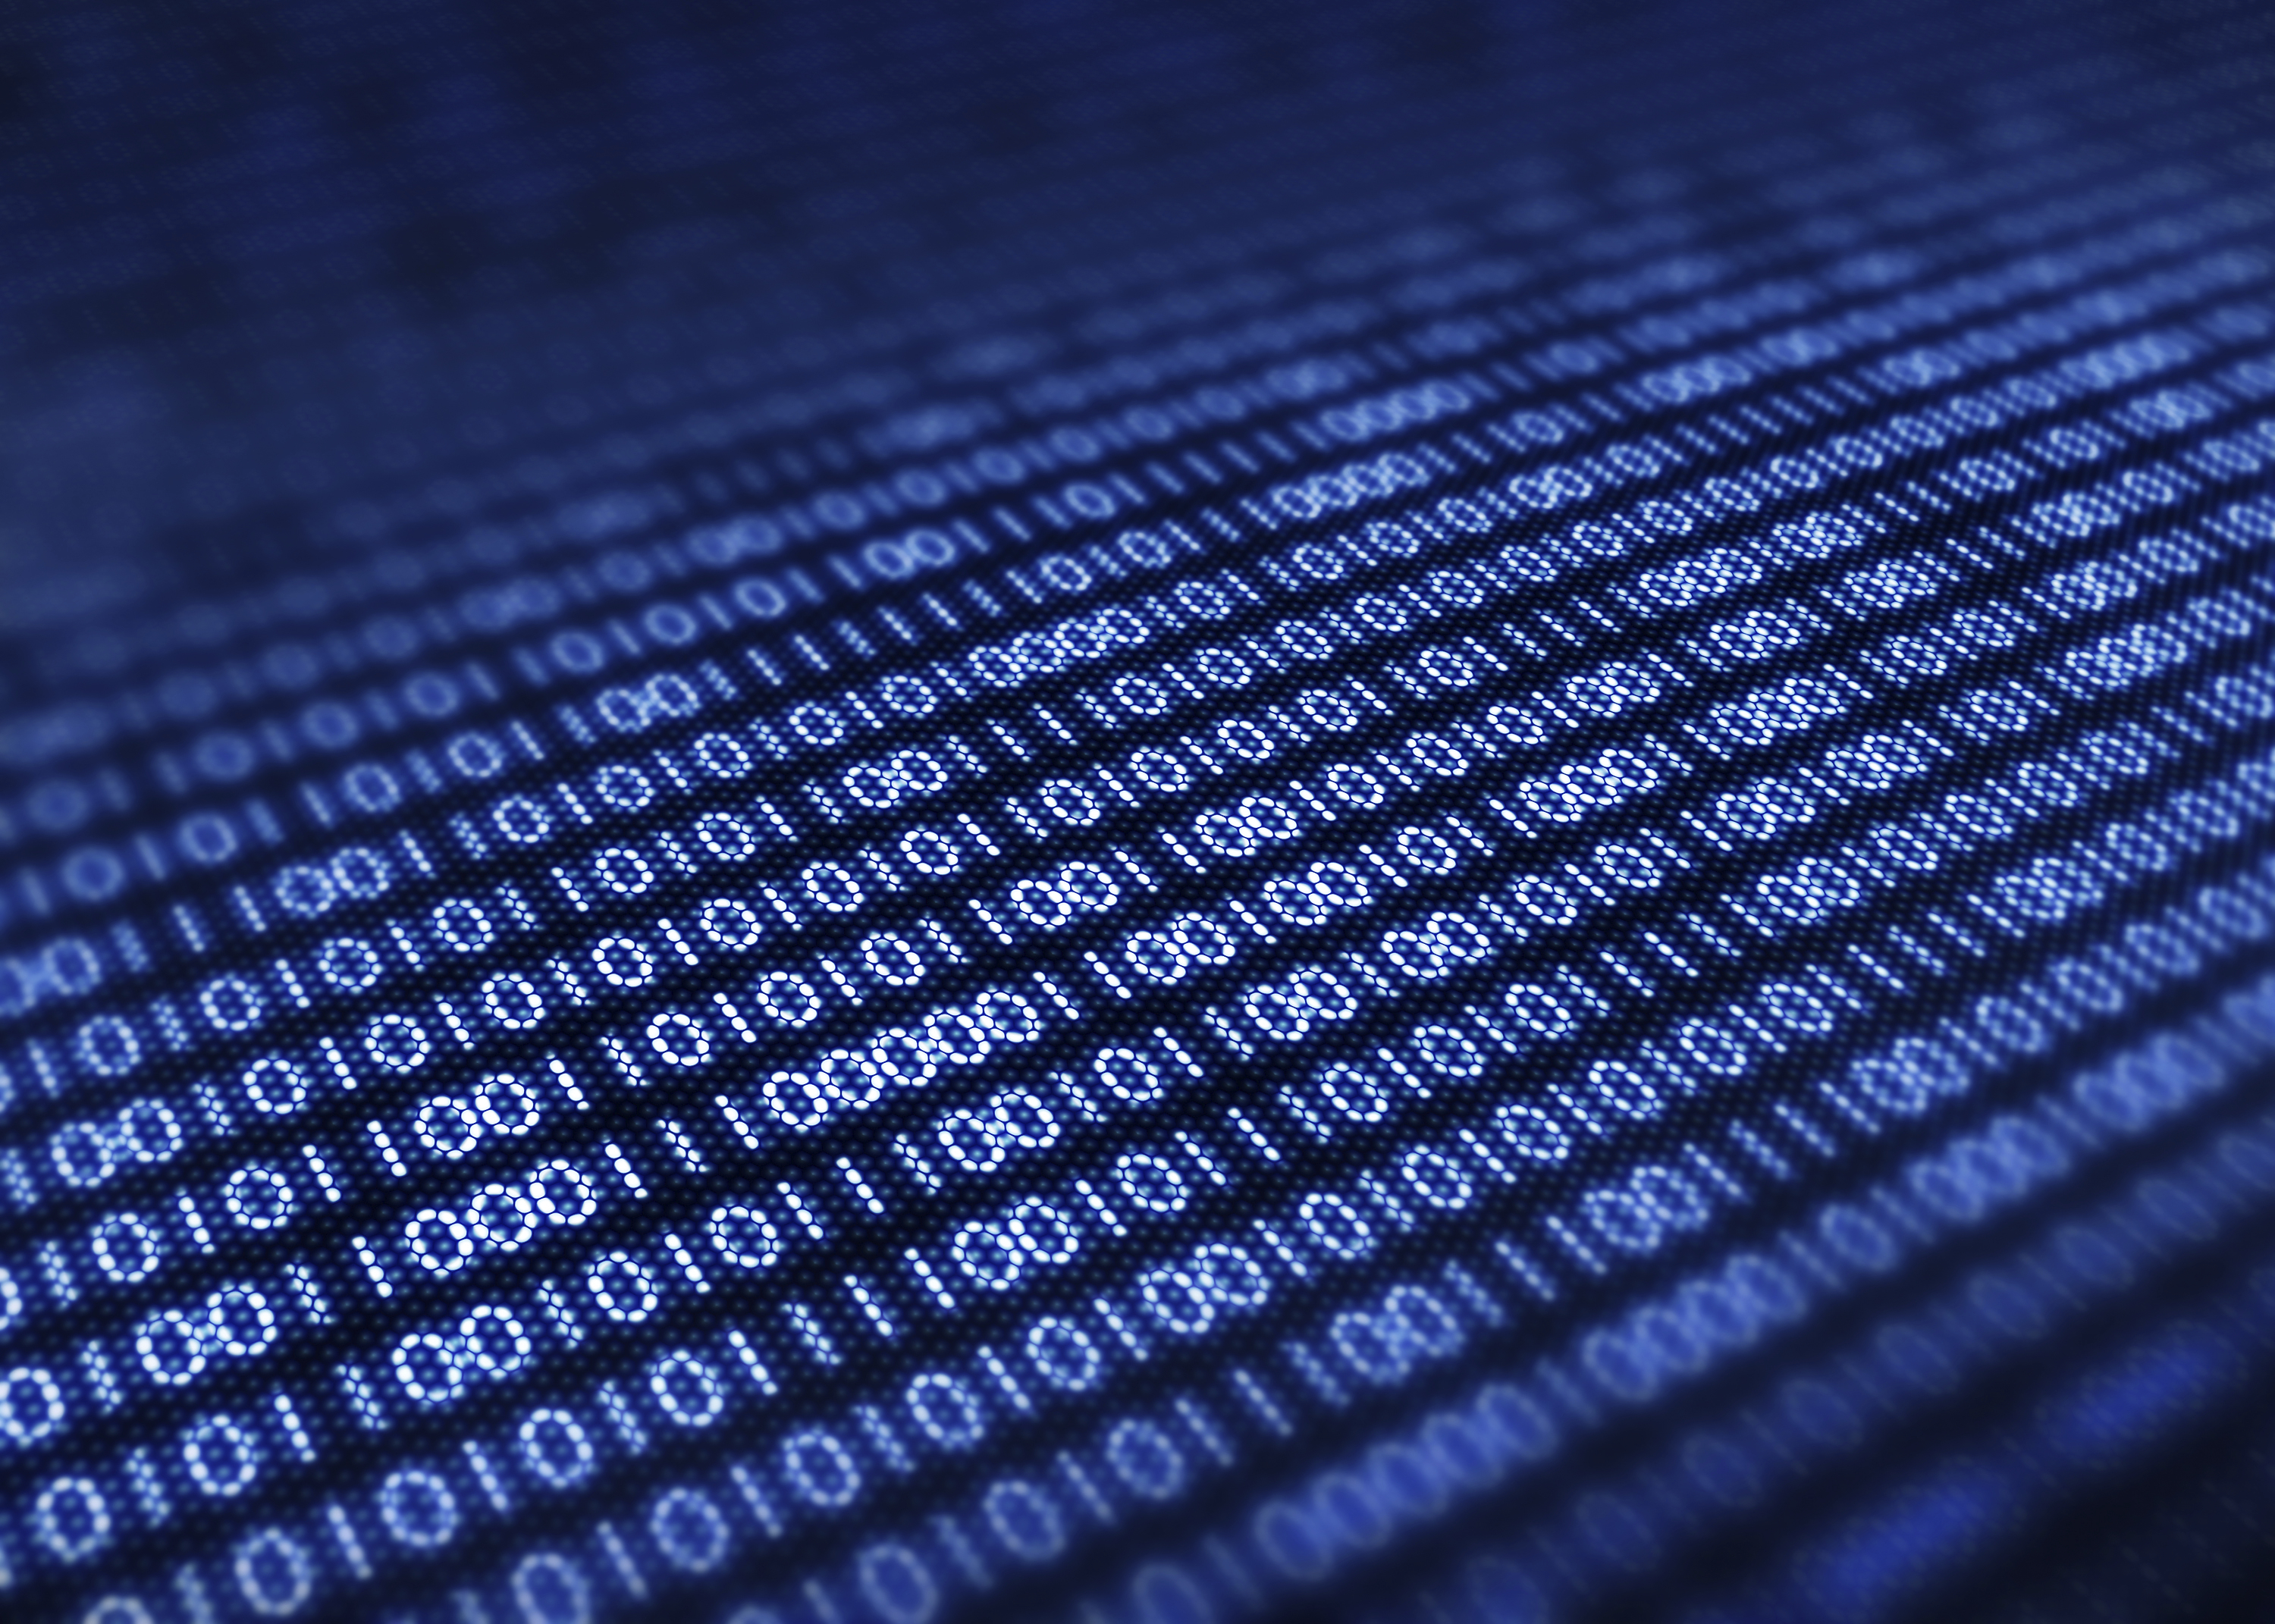 HHS Offers New Software Security Assessment Tool